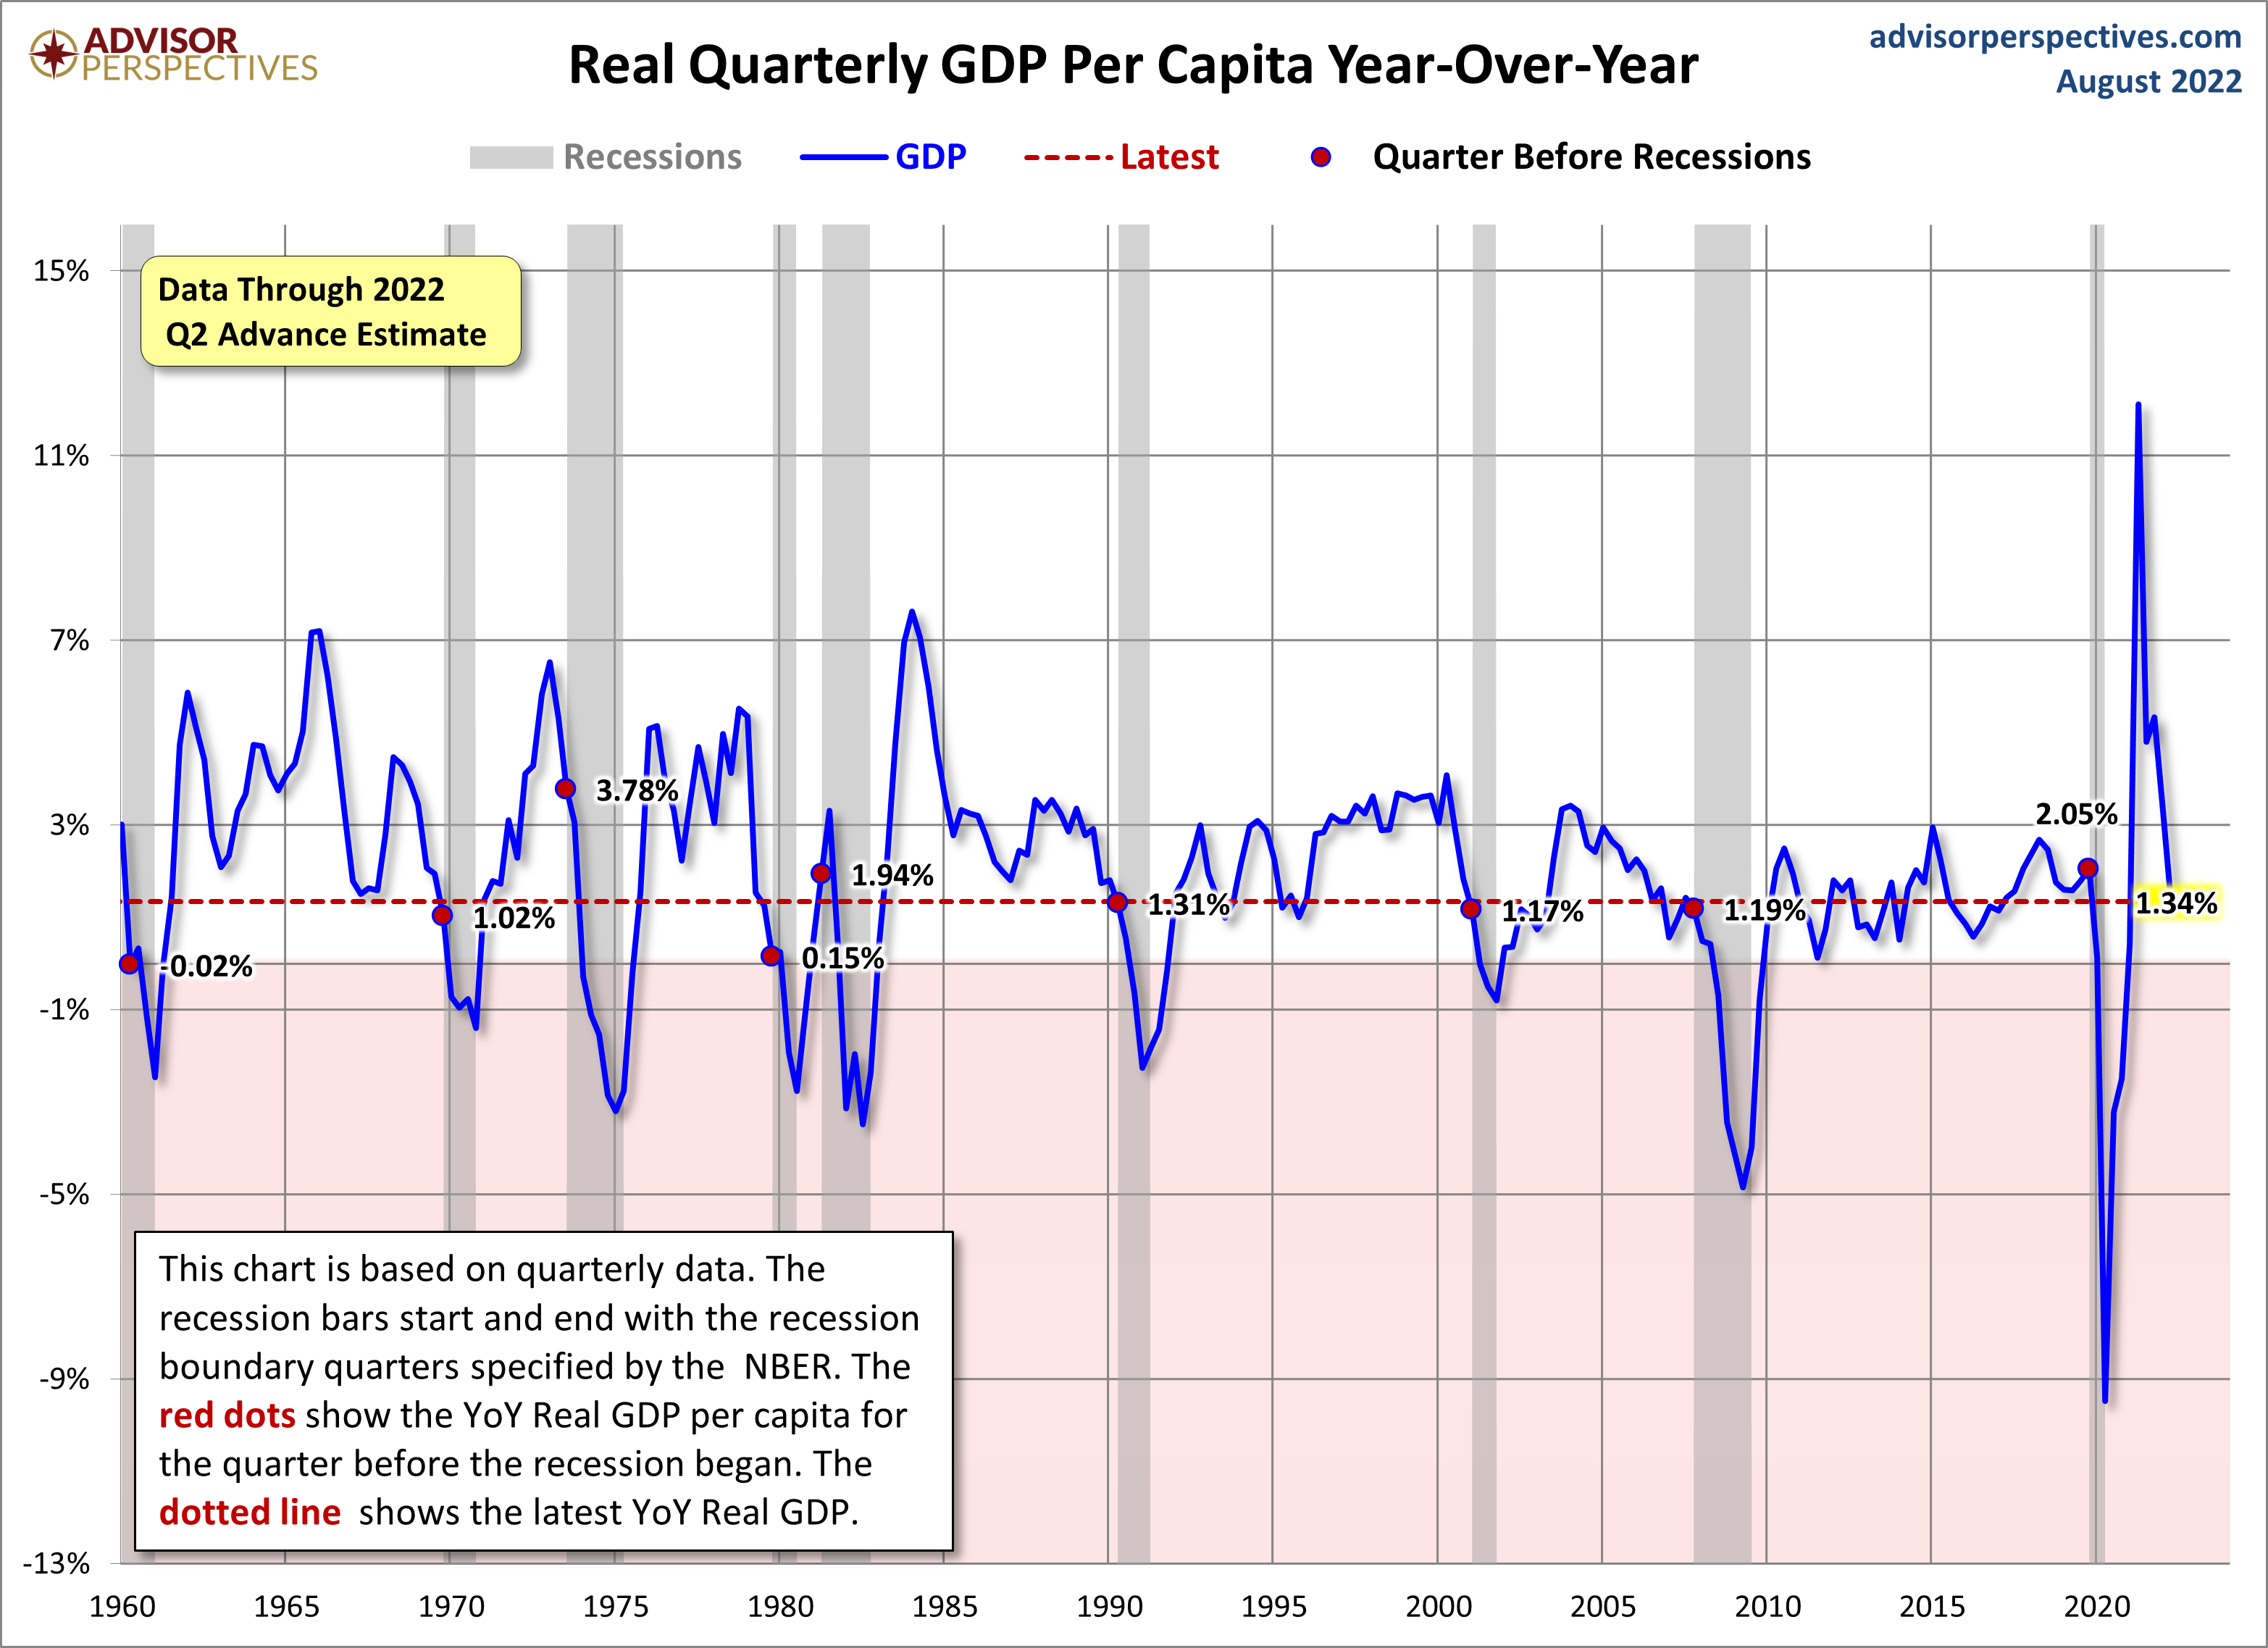 how to work out per capital gdp for year 0